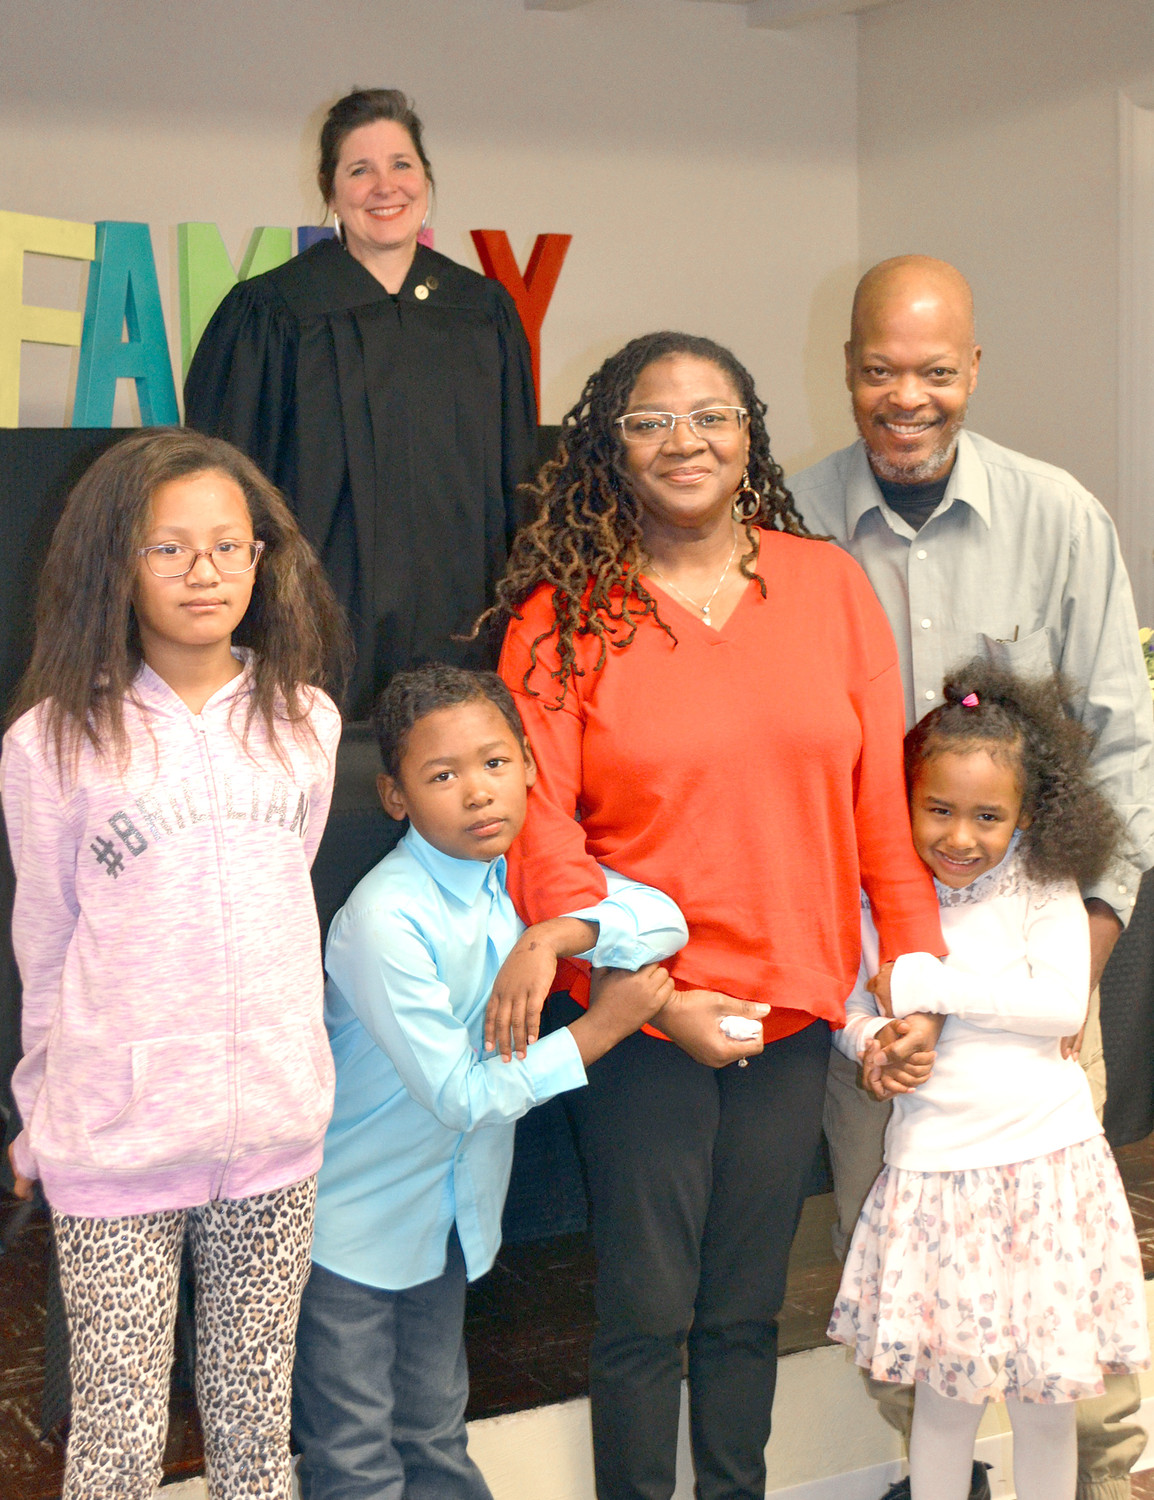 THE ROGERS FAMILY has a full family after adoptions on Monday. From left are, front, Ashanti, Alejandero and Mariela, and back, Chancellor Jerri Bryant, and parents Veronica and Walter Rogers.